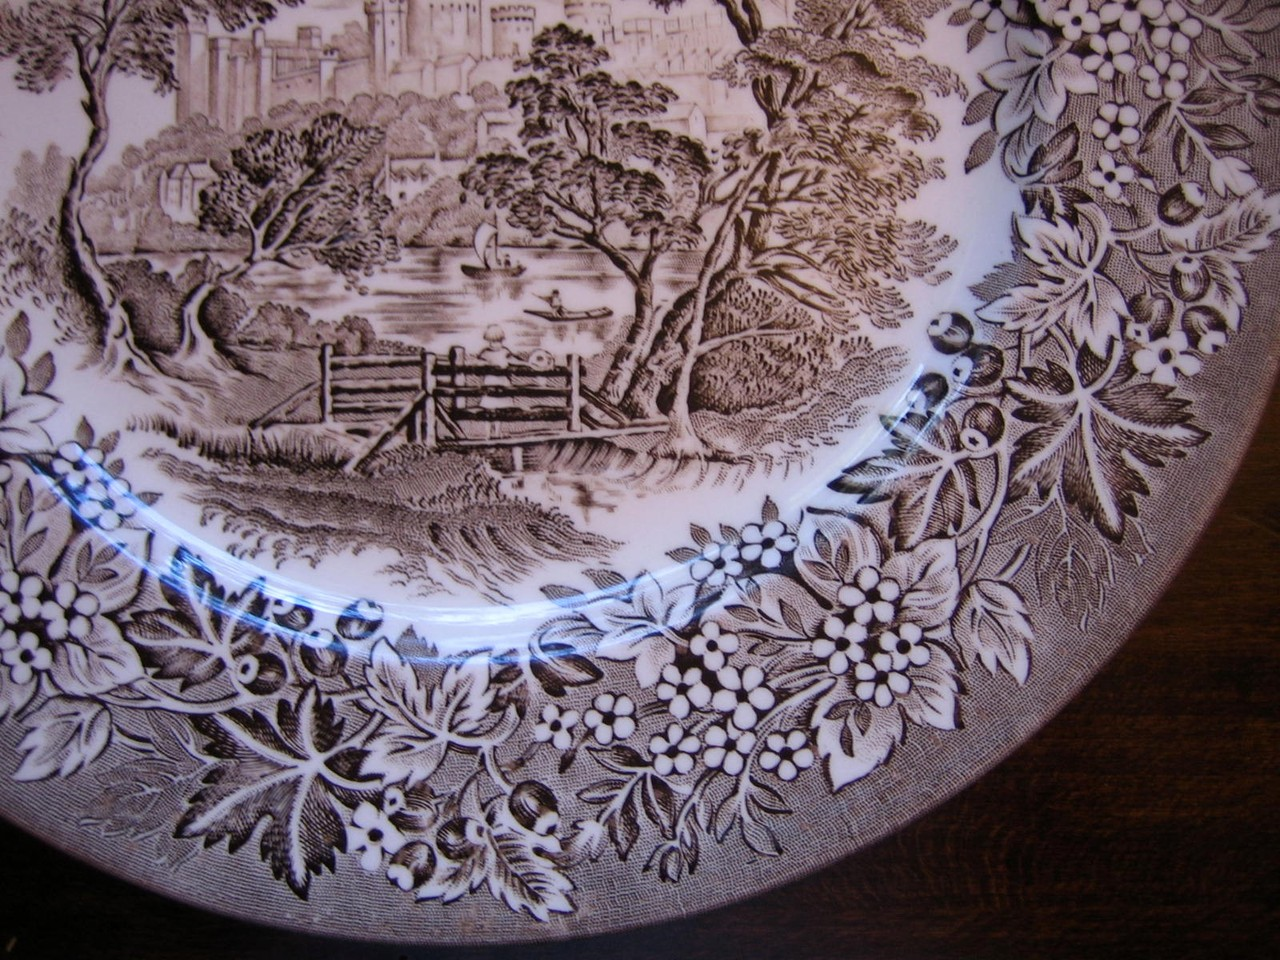 Brown Taupe Toile Transferware Girl Hat Bridge Vintage Plate Edge www.DecorativeDishes.net